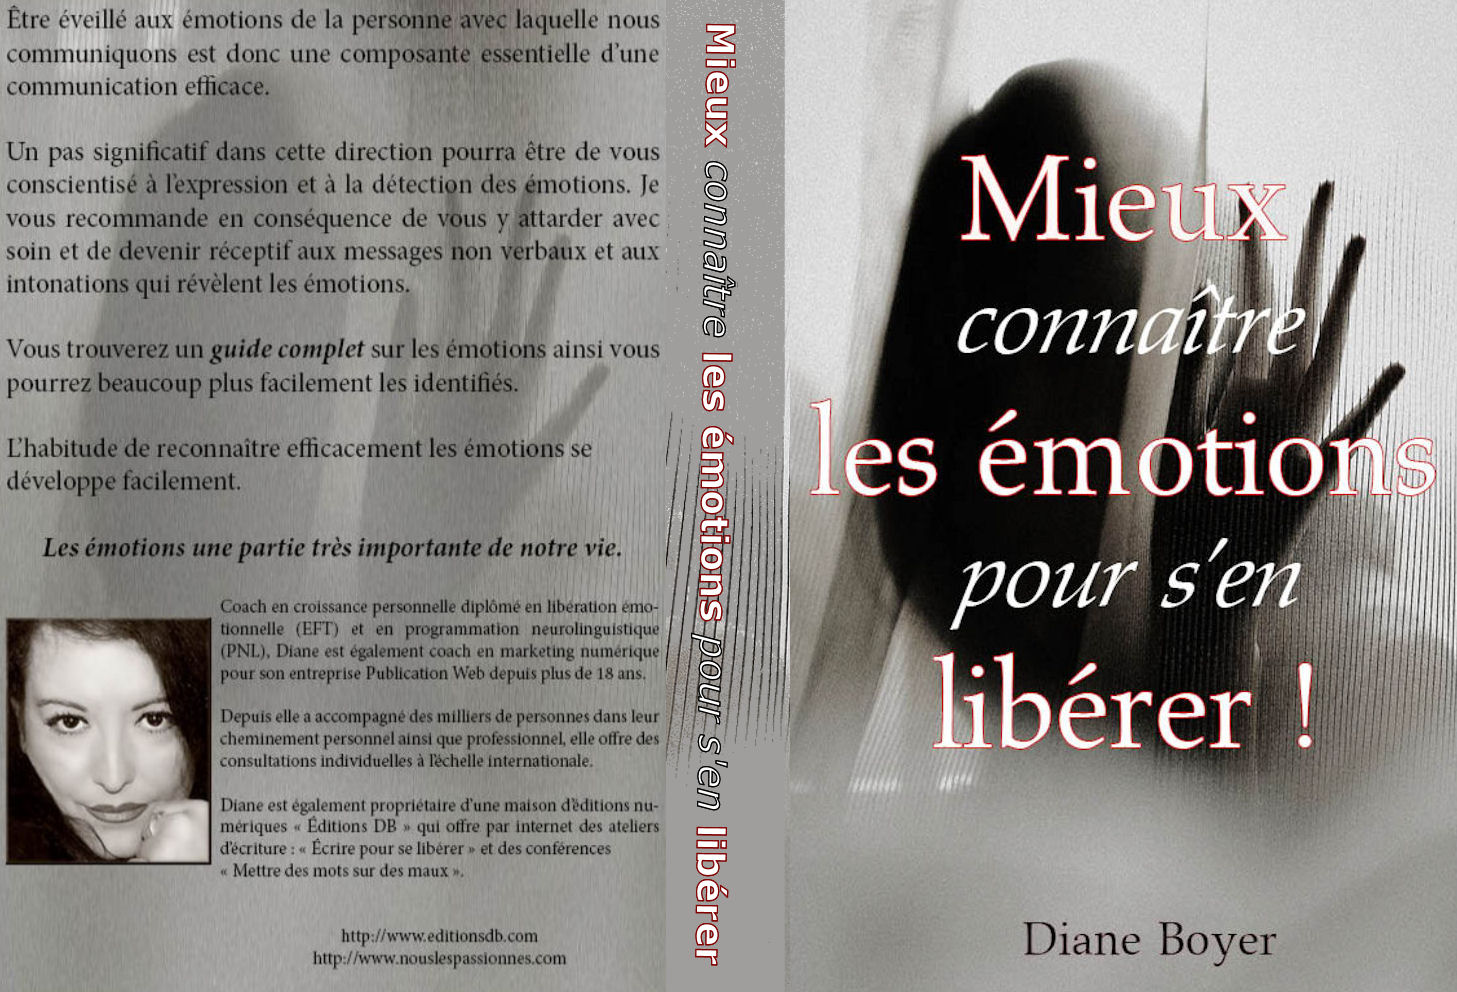 couverture_2.jpg